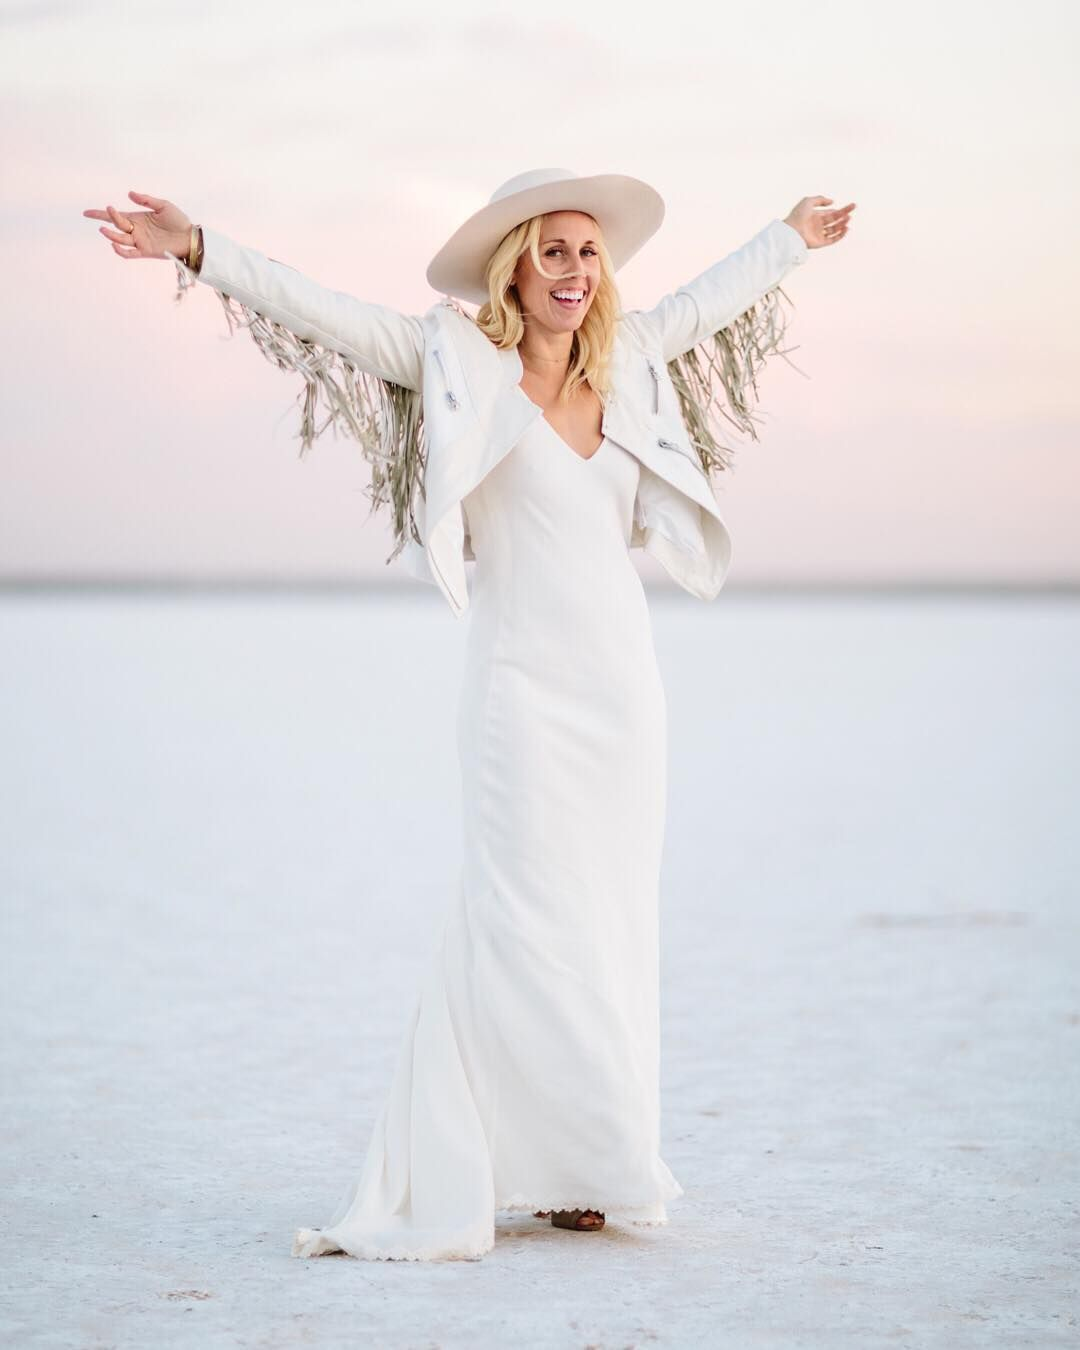 It S Decided We All Need A White Fringe Leather Jacket Check Out The Incredible White Leather Wedding Dress Leather Wedding Dress White Fringe Leather Jacket [ 1350 x 1080 Pixel ]